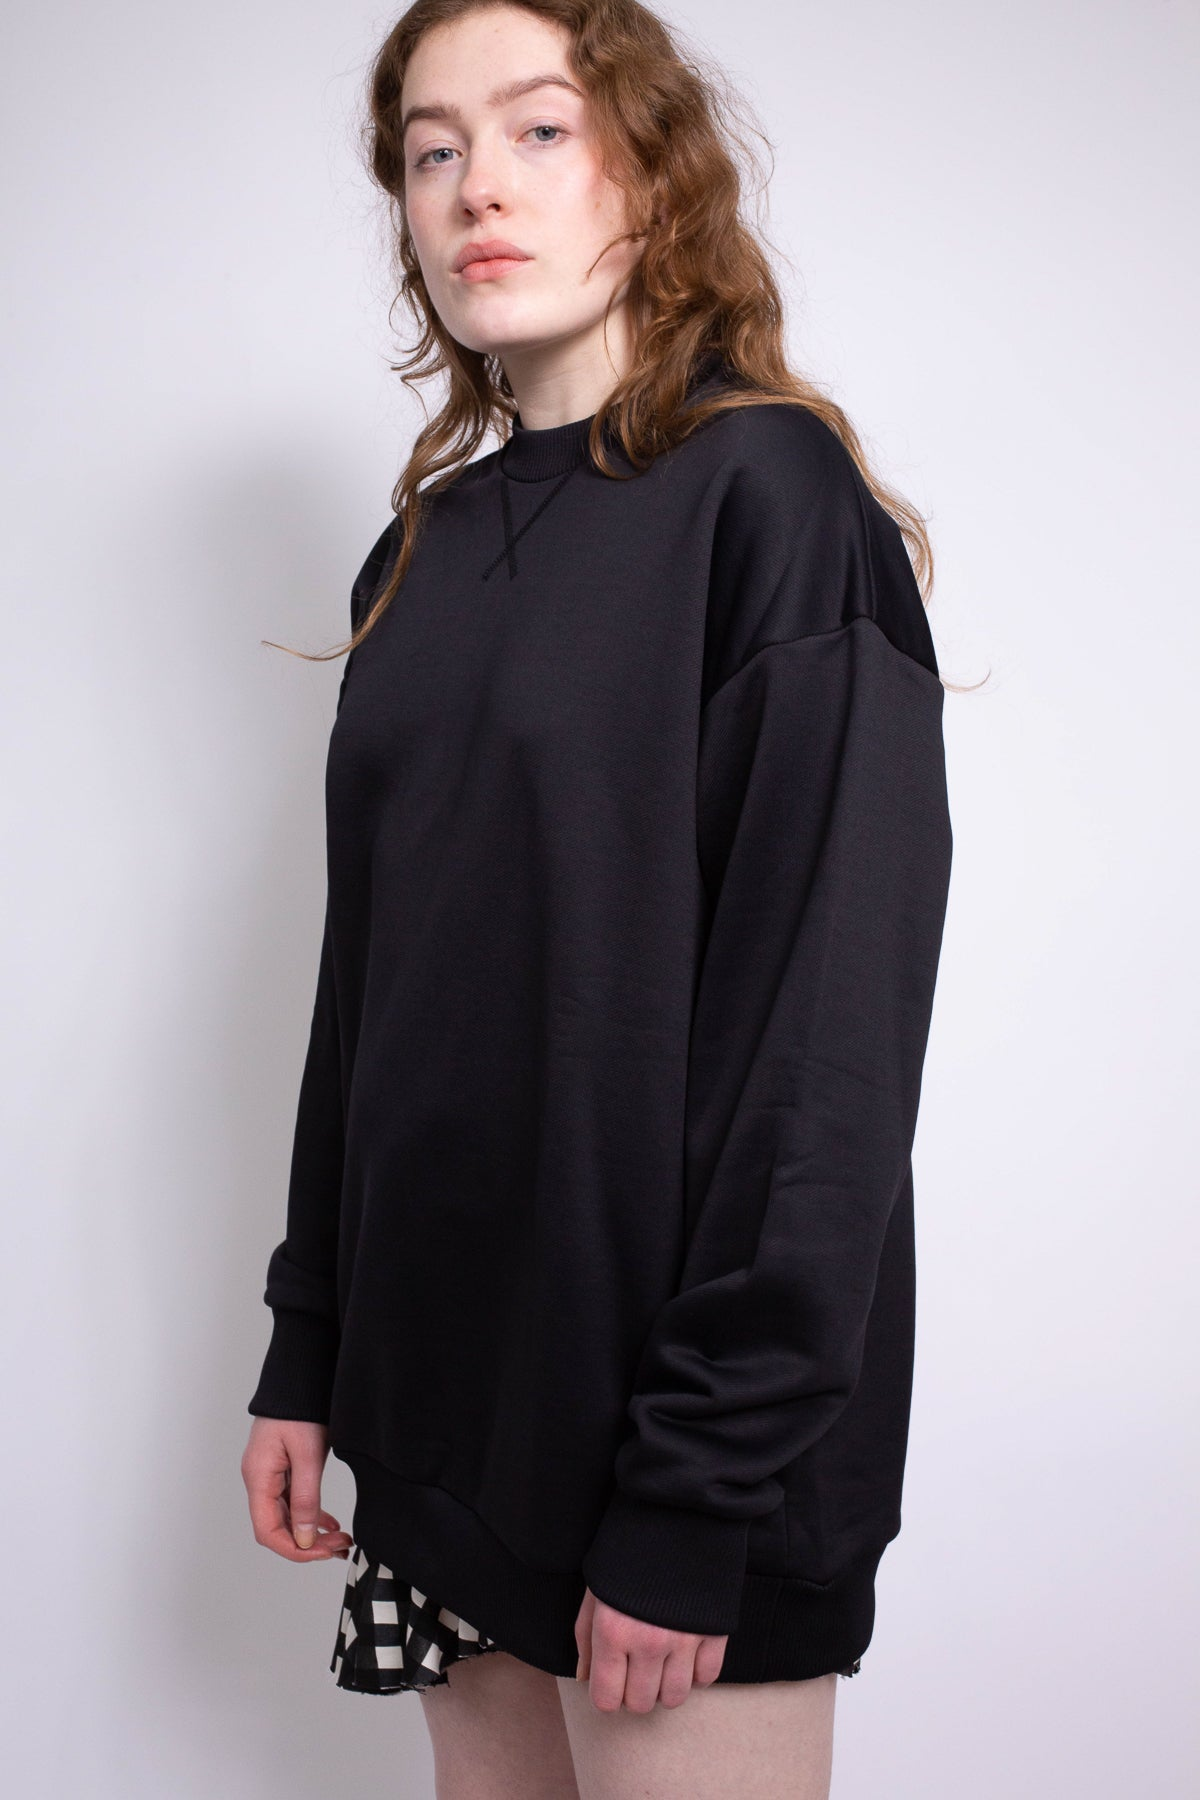 BLACK OVERSIZED SWEATSHIRT